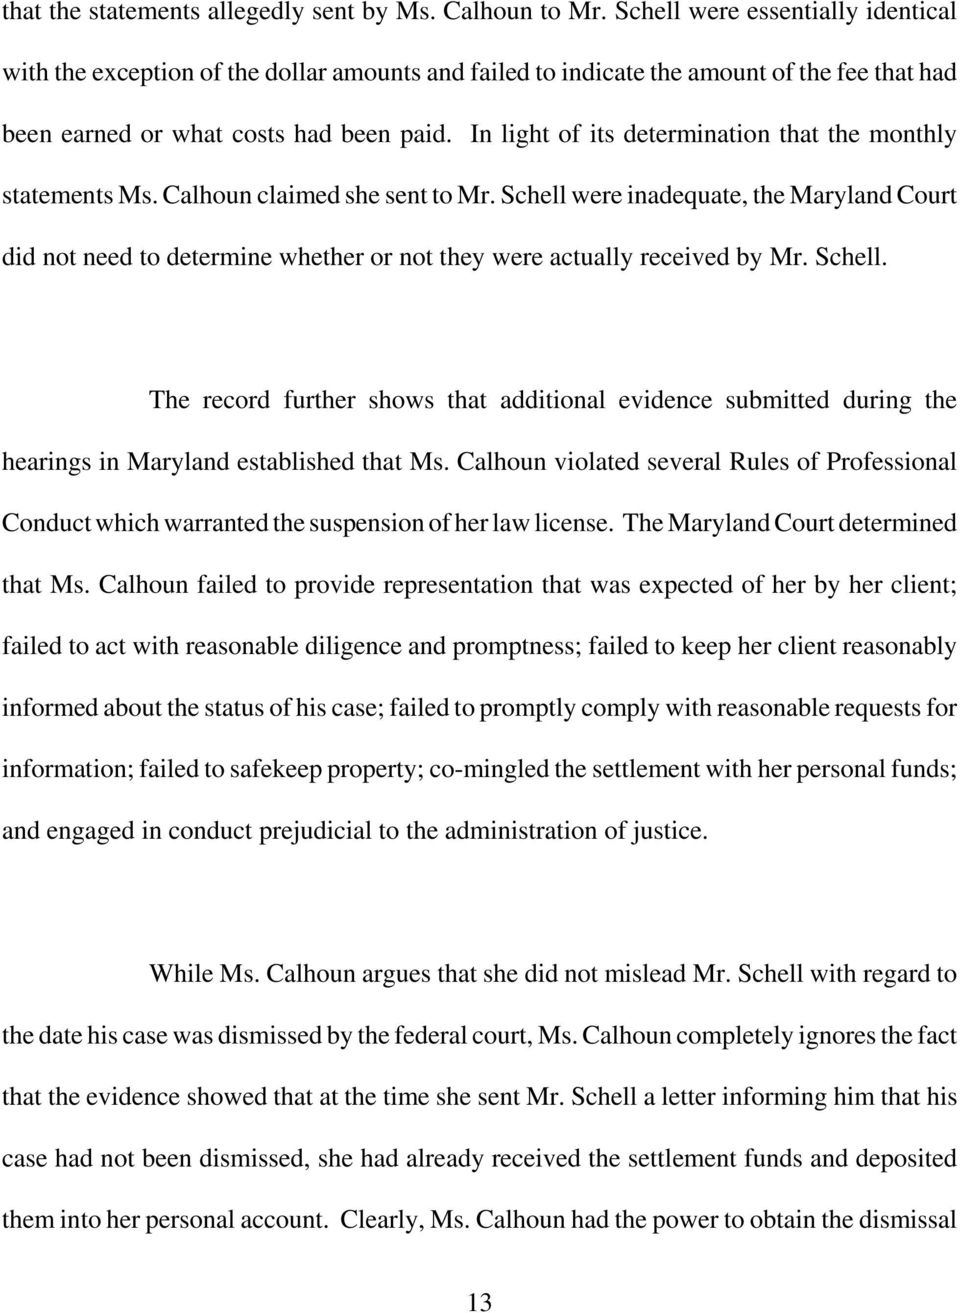 In light of its determination that the monthly statements Ms. Calhoun claimed she sent to Mr.